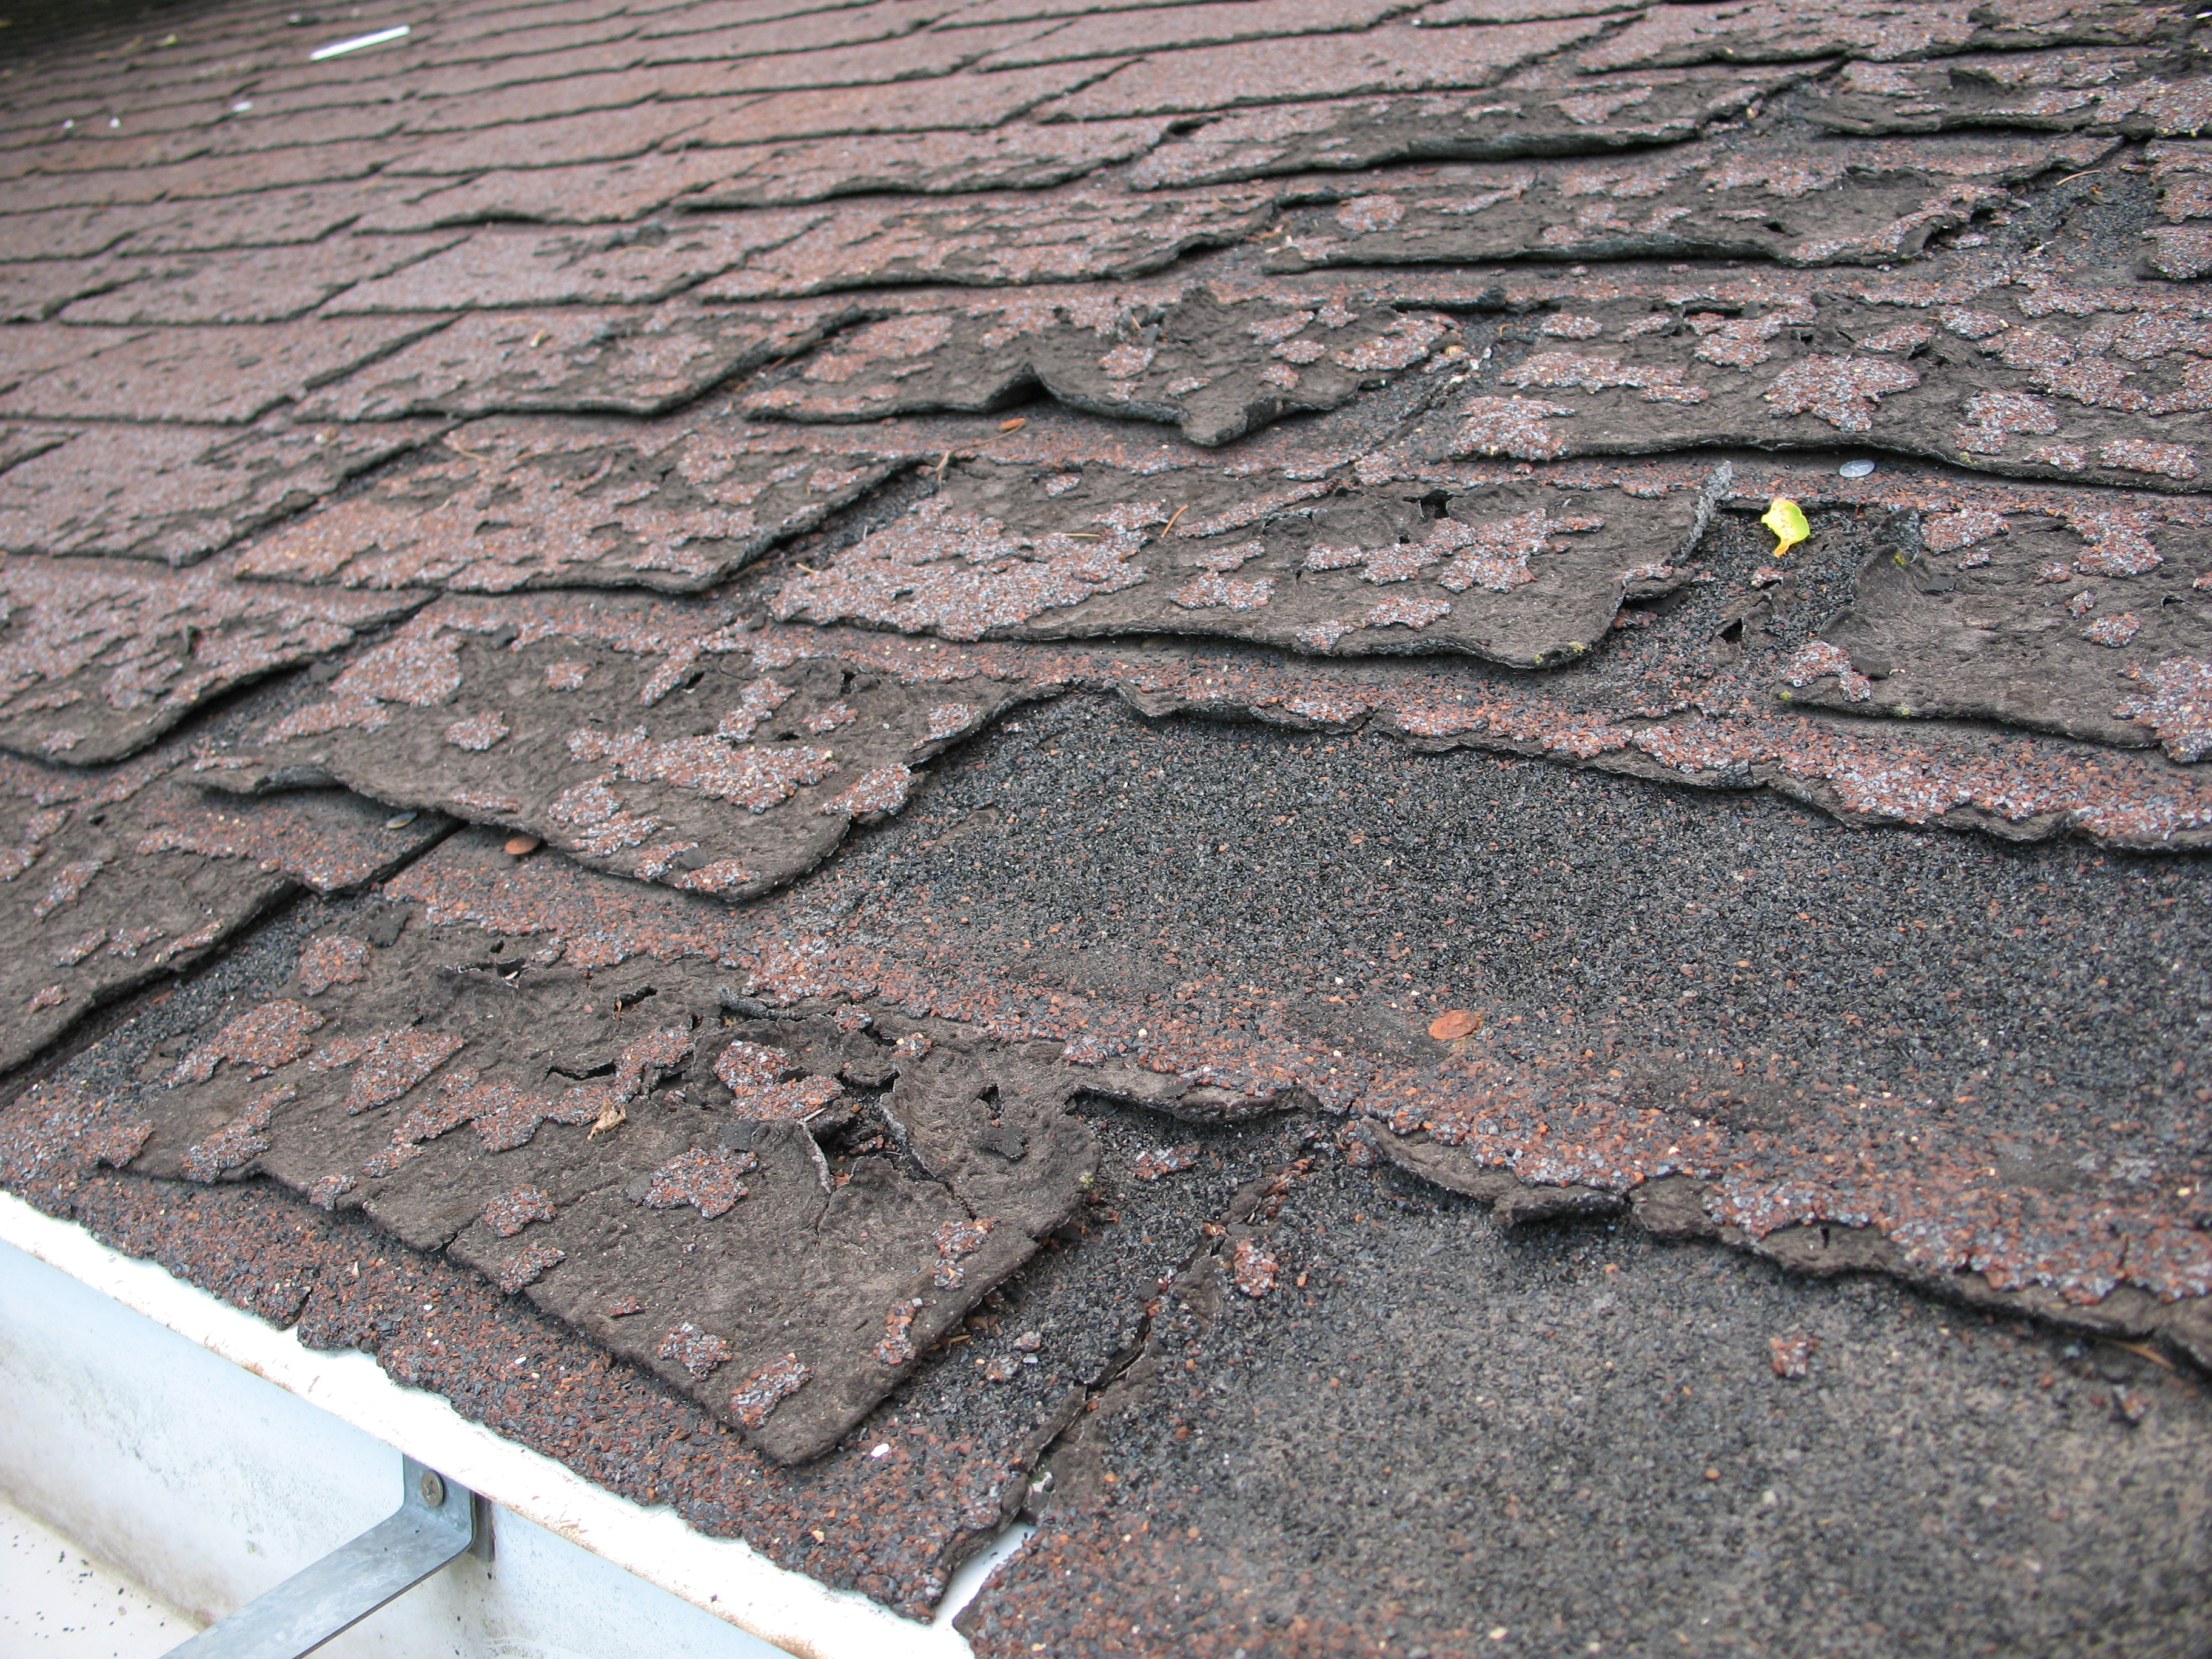 Roofing Felt Paper File:Failure of asphalt shingles allowing roof leakage.JPG ...